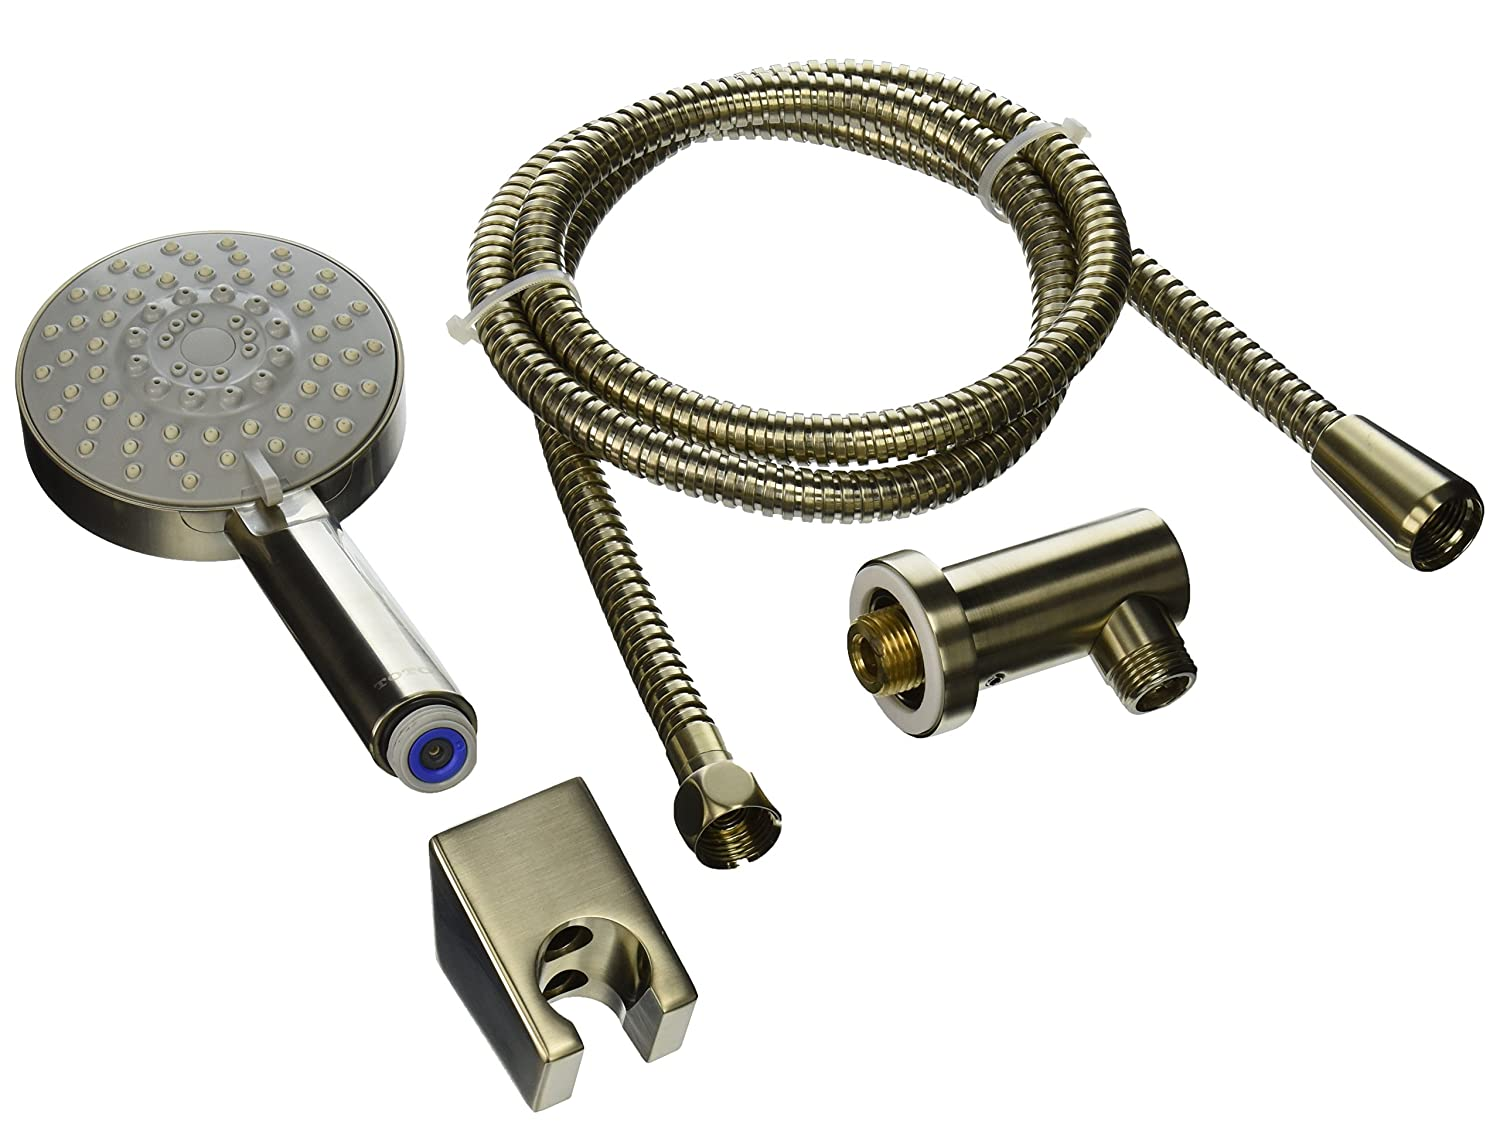 Toto TS630F2#BN Upton Handshower Set, Brushed Nickel by Toto B004PUE0FM  つや消しニッケル